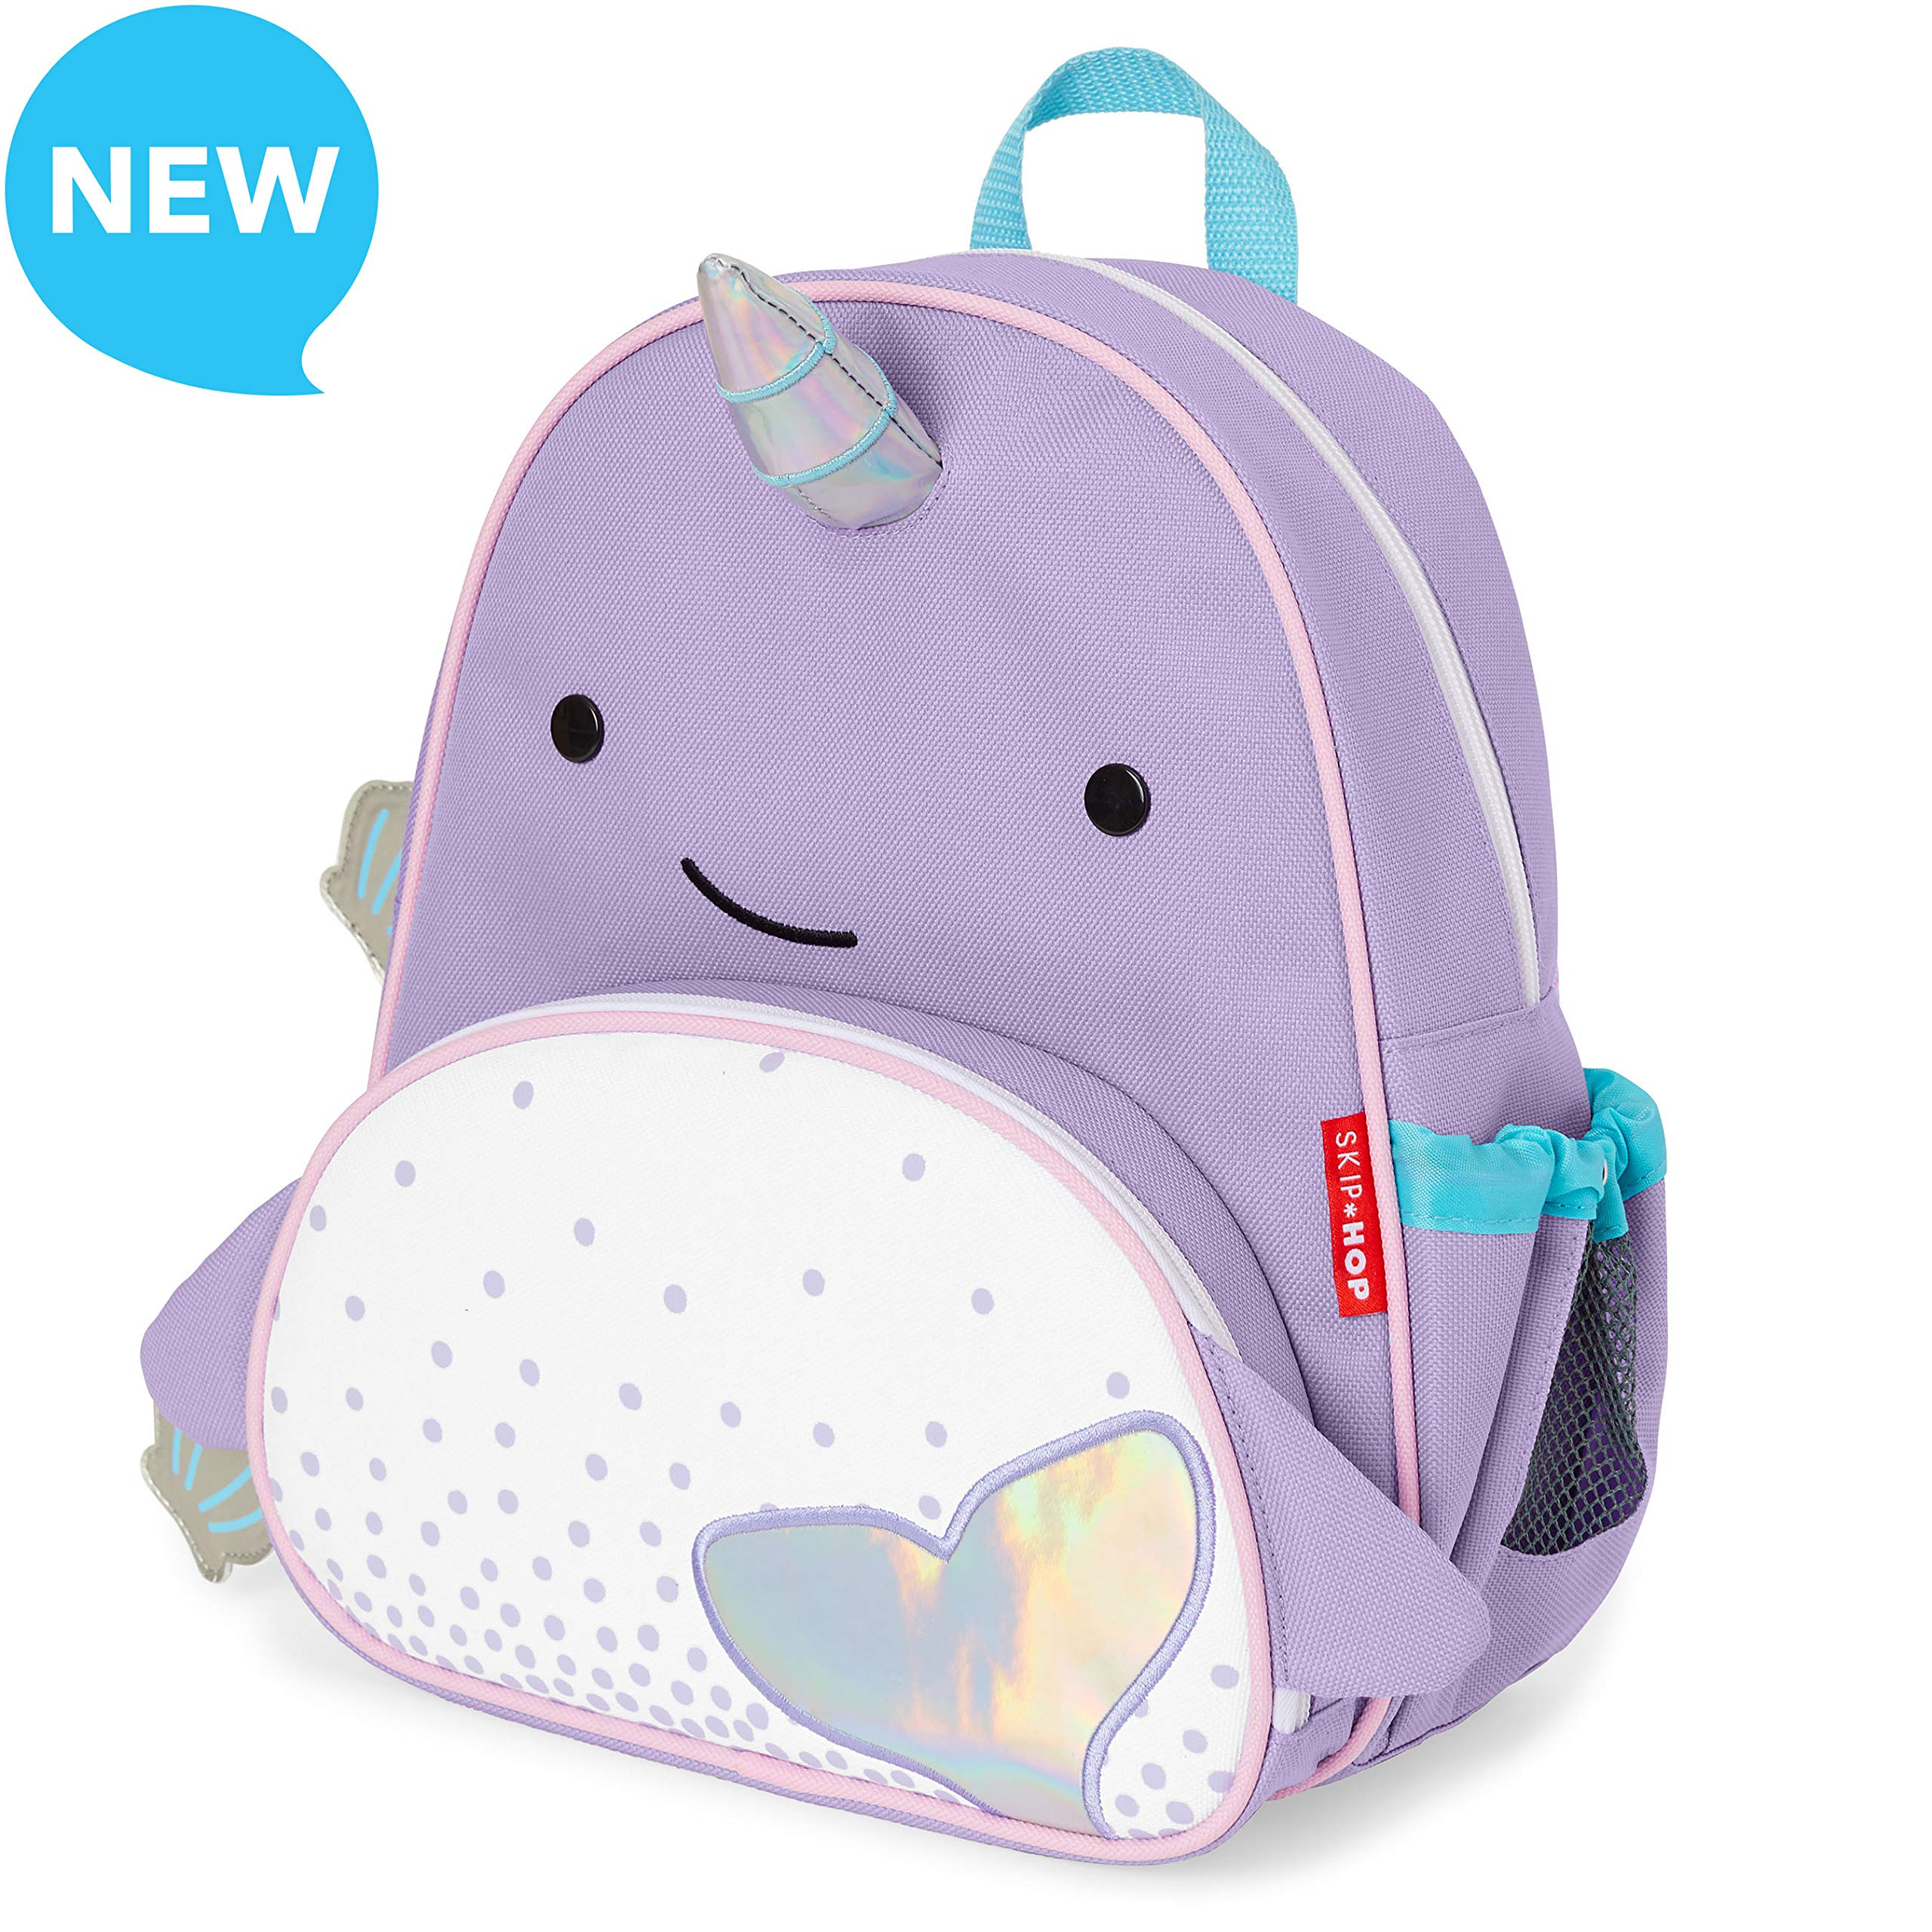 Skip Hop Toddler Backpack, 12'' Narwhal School Bag, Multi, 0.4 Pounds by Skip Hop (Image #1)